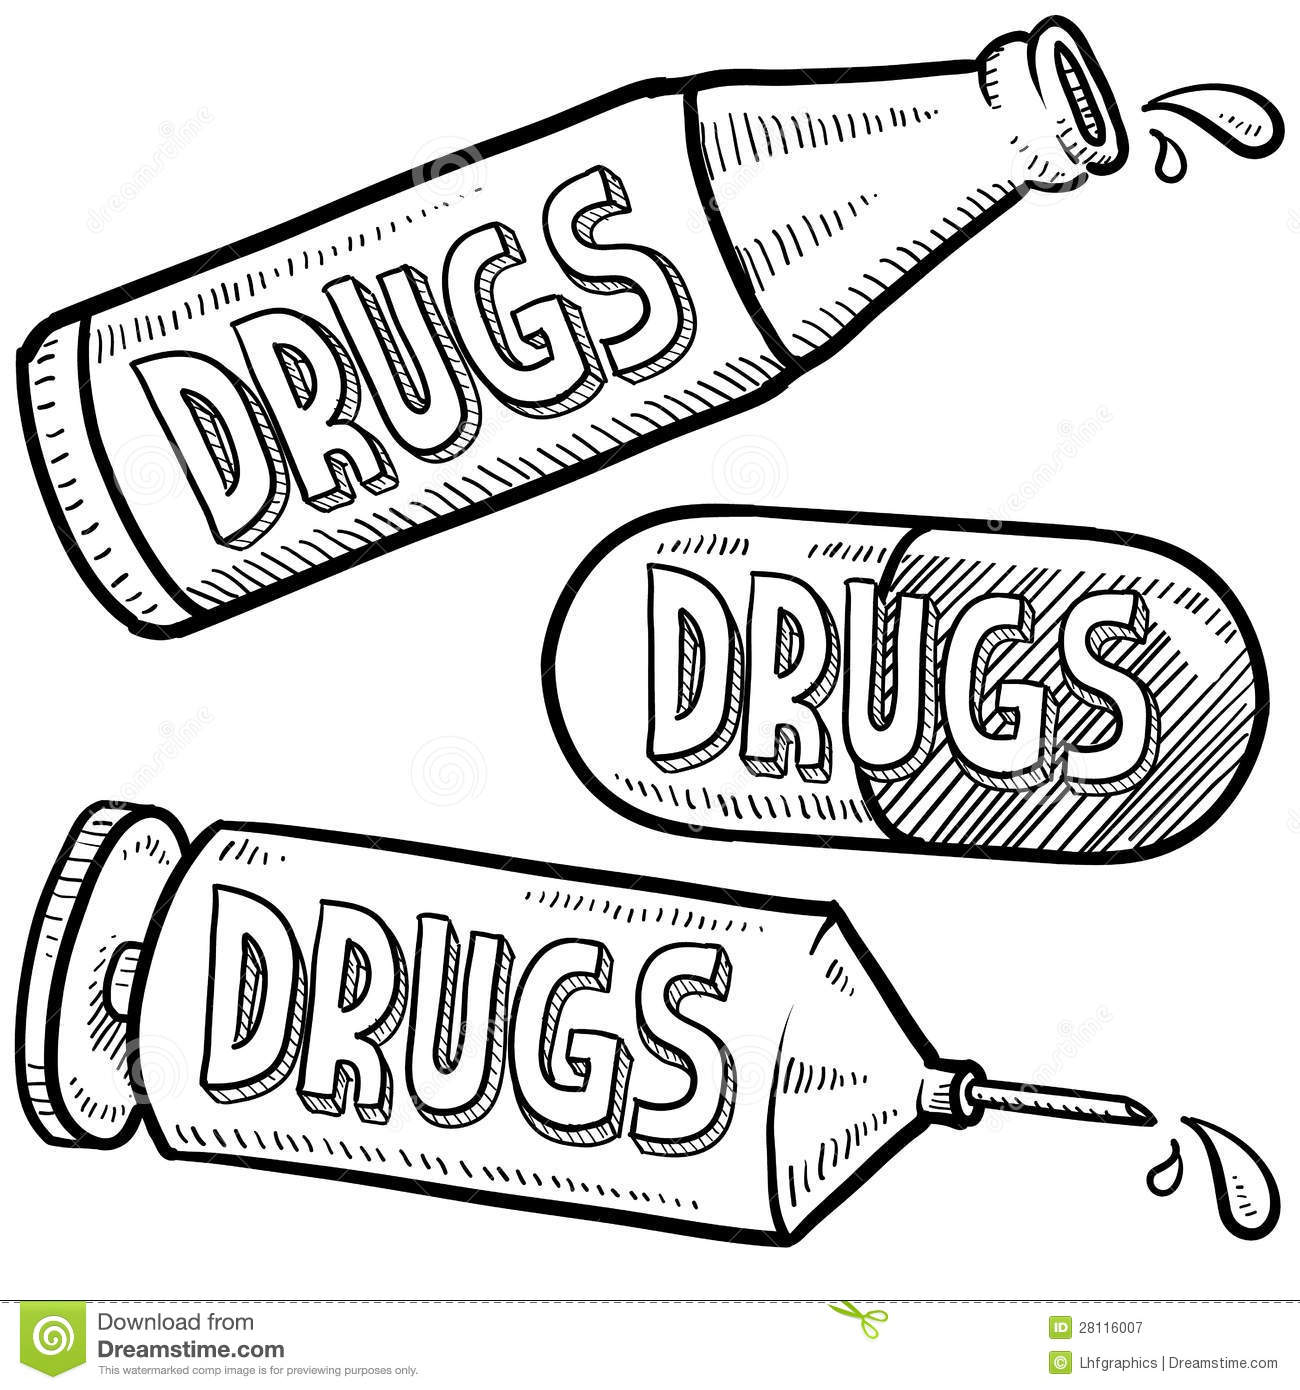 Drug abuse sketch stock vector. Illustration of capsule